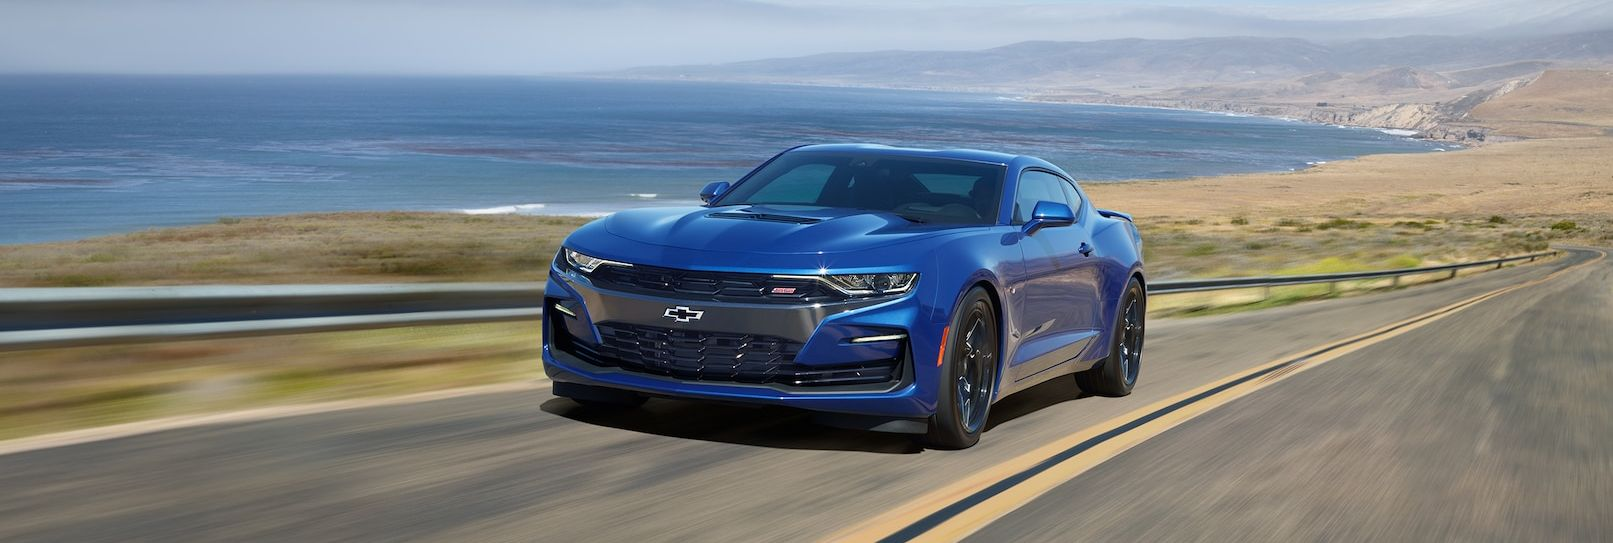 2019 Chevrolet Camaro Leasing near Fairfax, VA